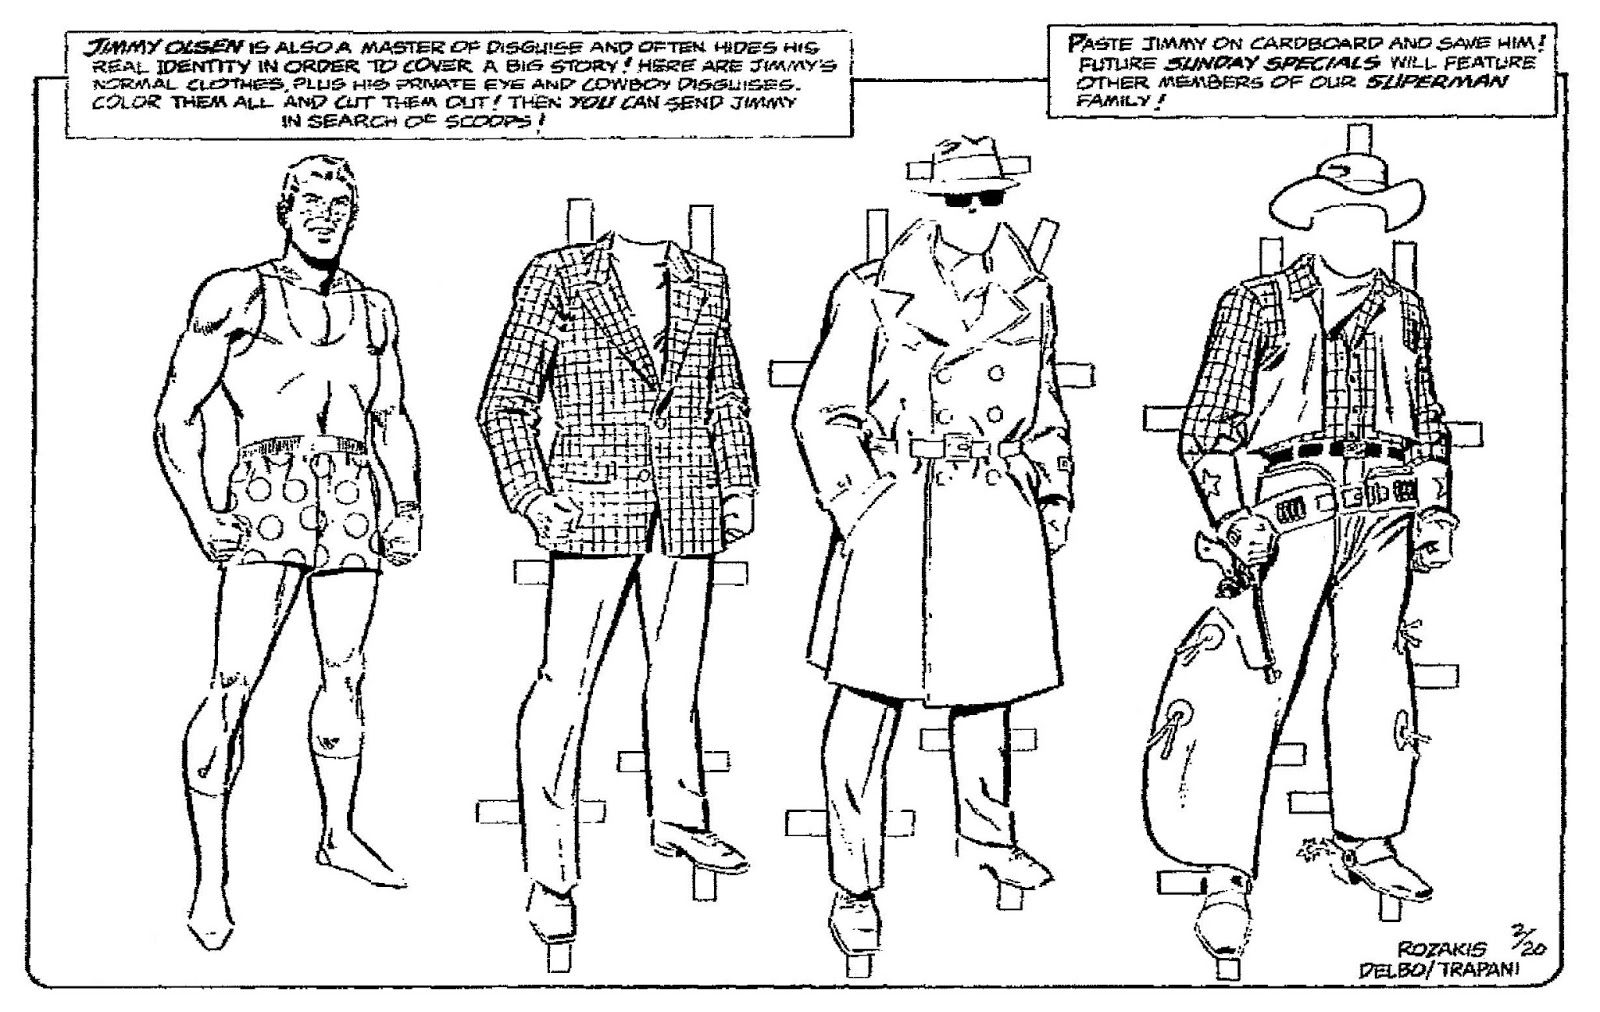 February 19, 1983.  Jimmy Olsen is also a master of disguise and often hides his real identity in order to cover a big story!  Here are Jimmy's normal clothes, his private eye and cowboy disguises.  Color and cut them out!  Then you can send Jimmy in search of scoops!  Paste Jimmy on cardboard and save him!  Future Sunday Specials will feature other members of our Superman family!